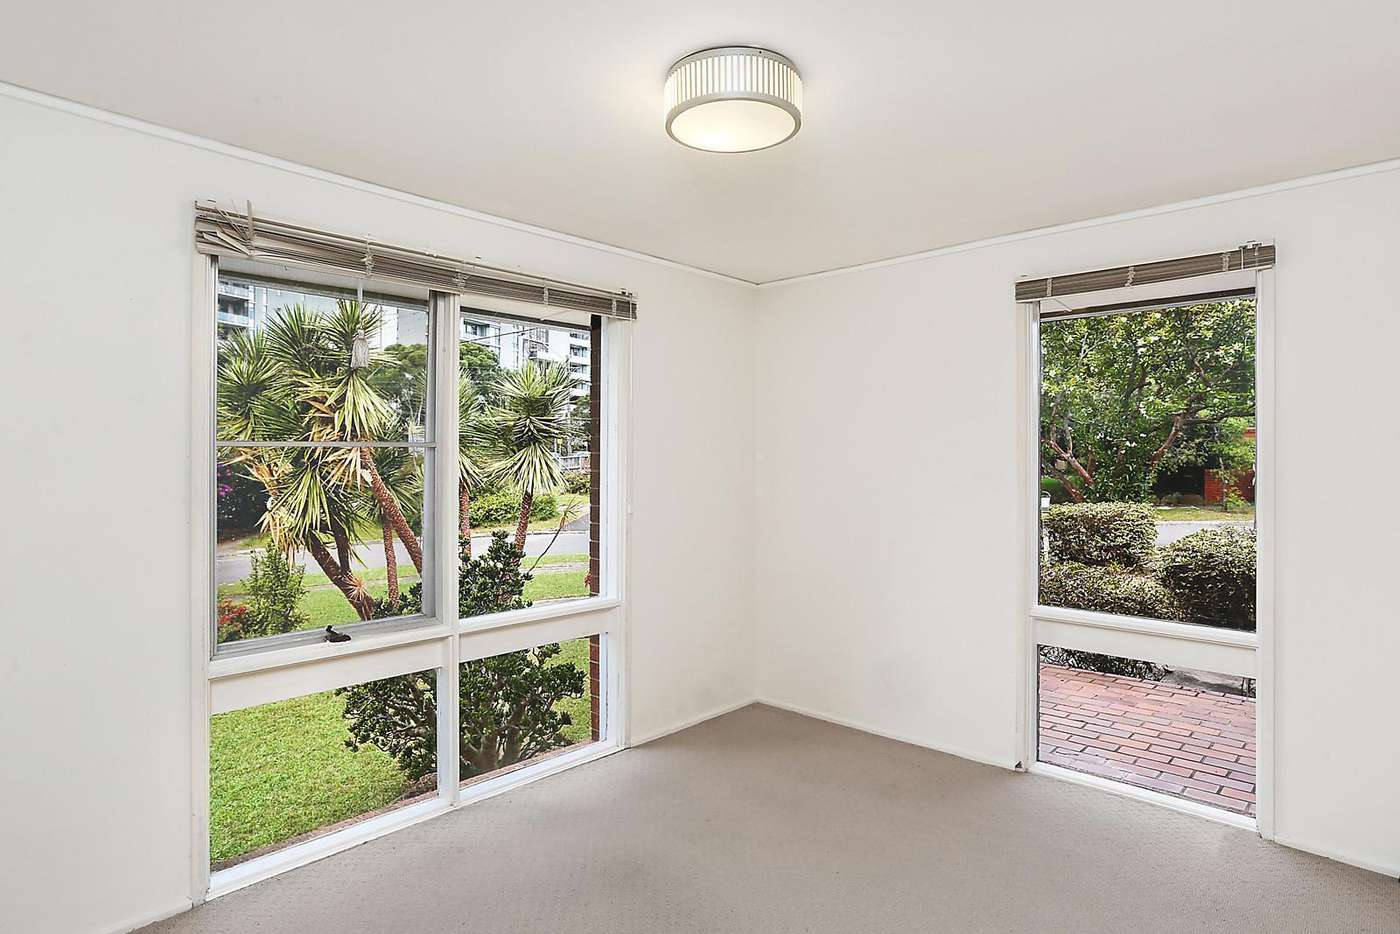 Fifth view of Homely house listing, 84 Waring Street, Marsfield NSW 2122